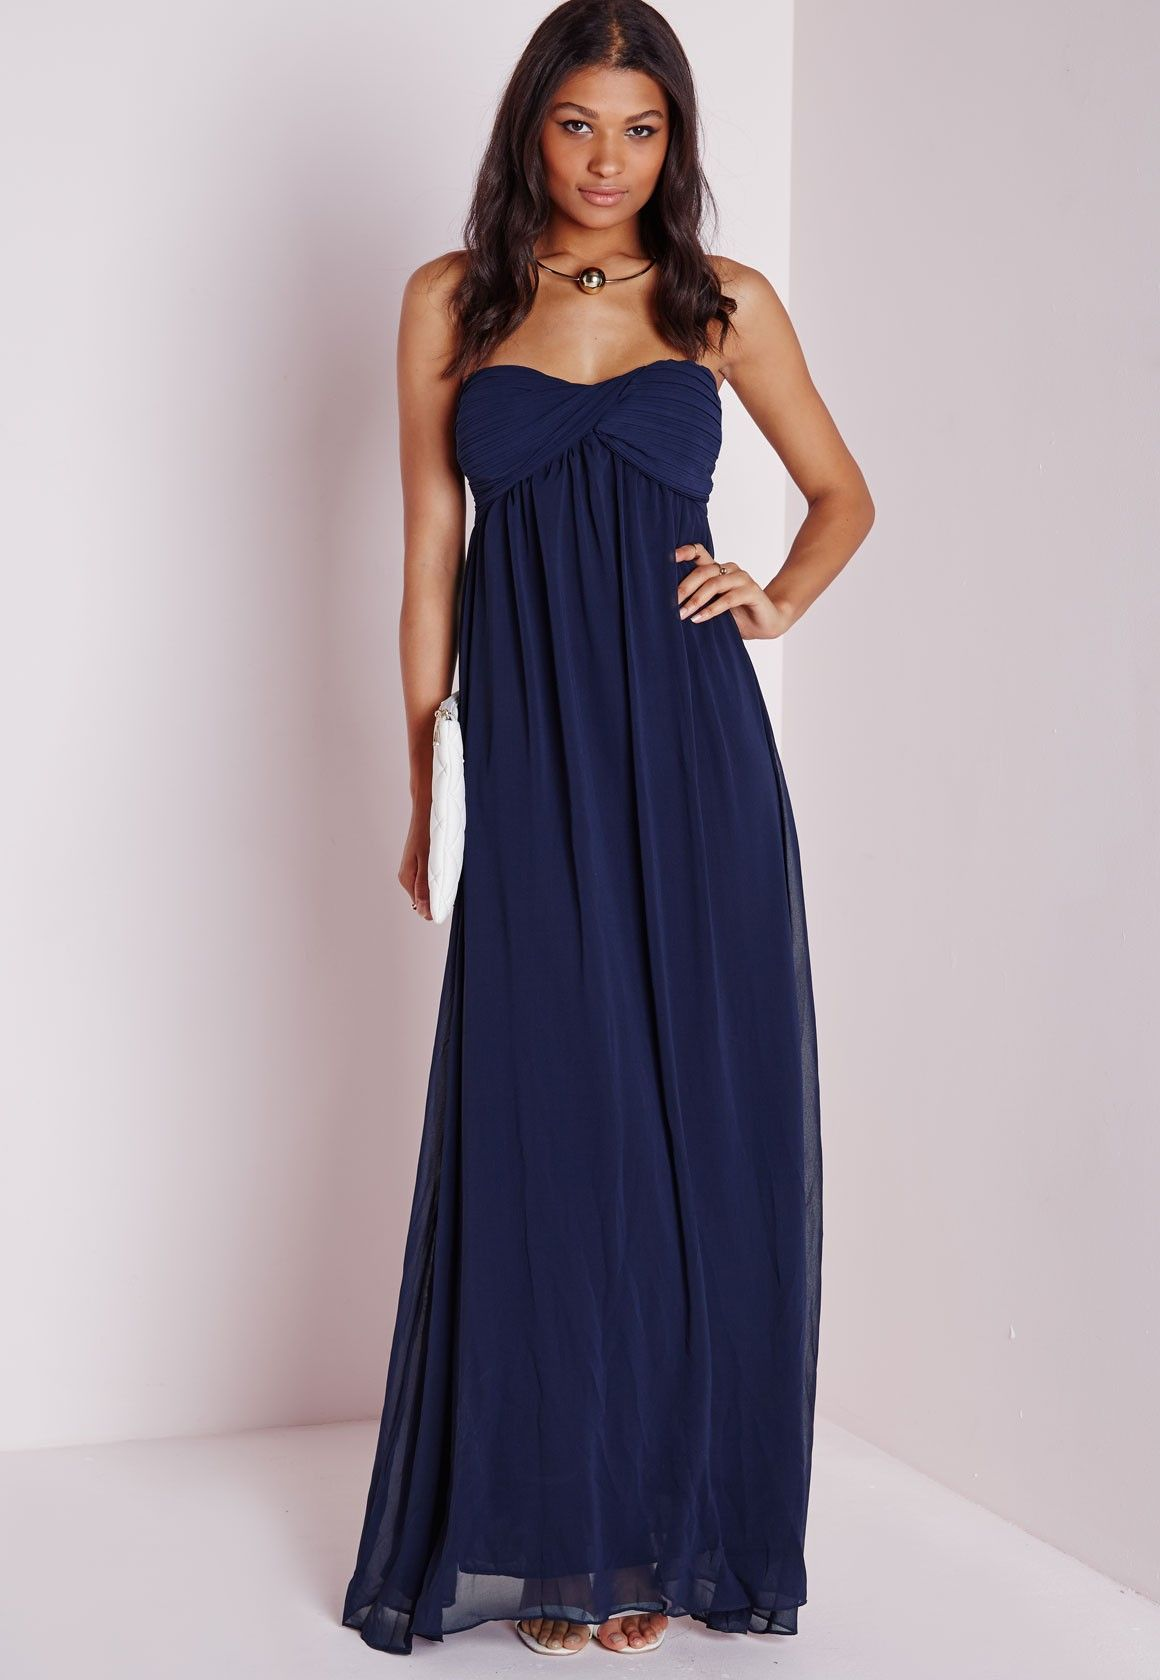 ae220851ec0 Missguided - Robe longue en mousseline bleu marine